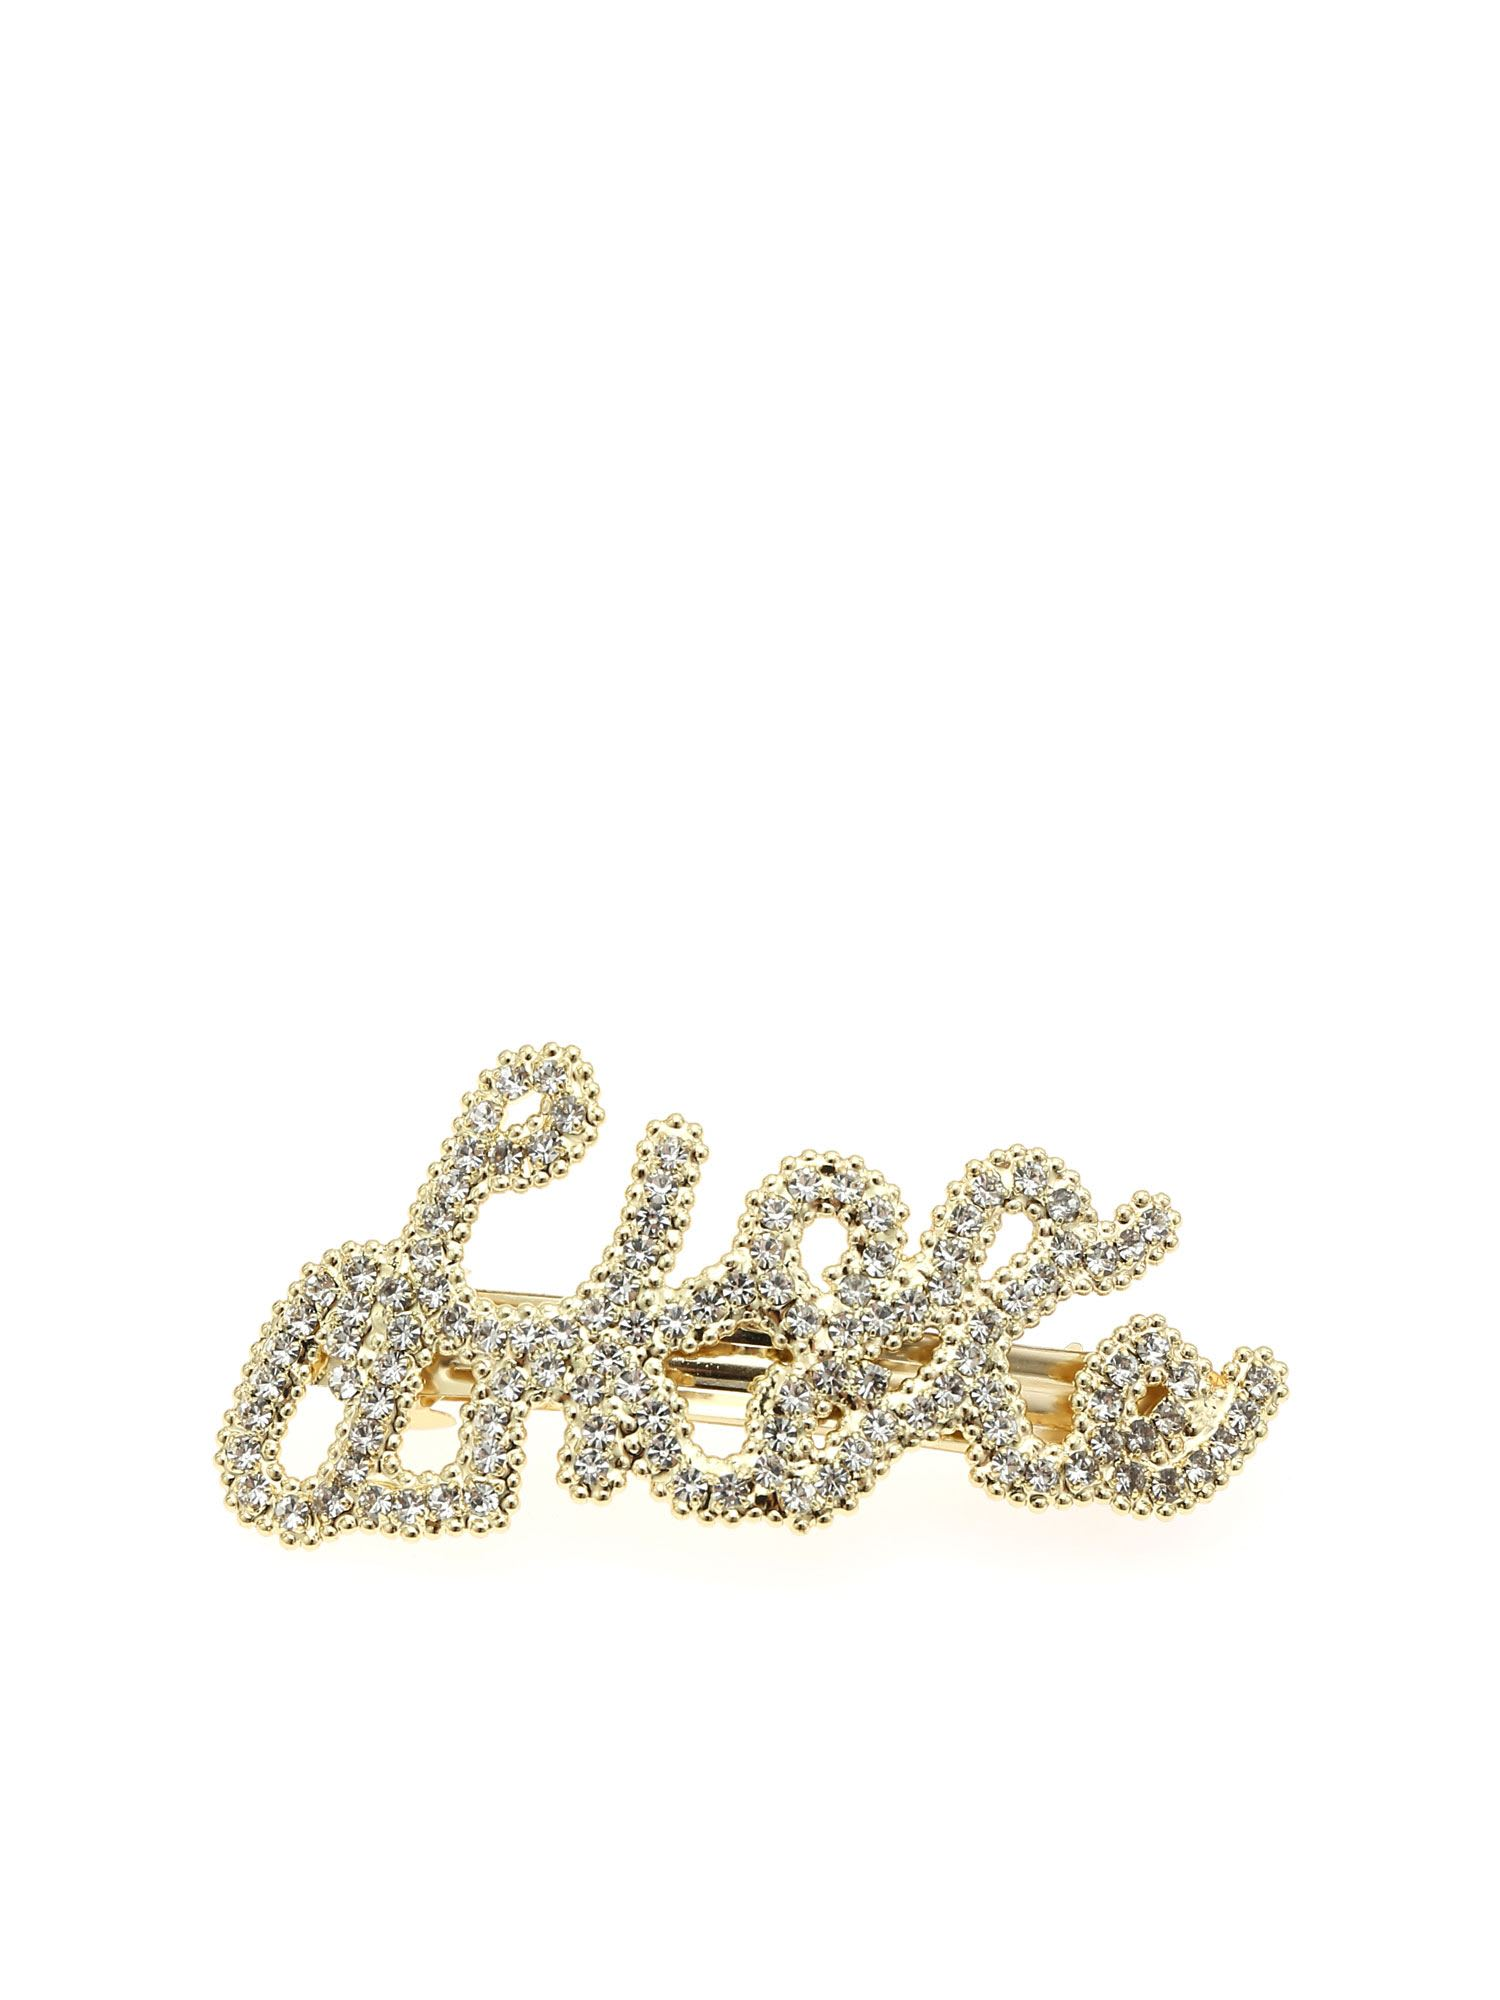 Ciao Amore Clip With Rhinestones